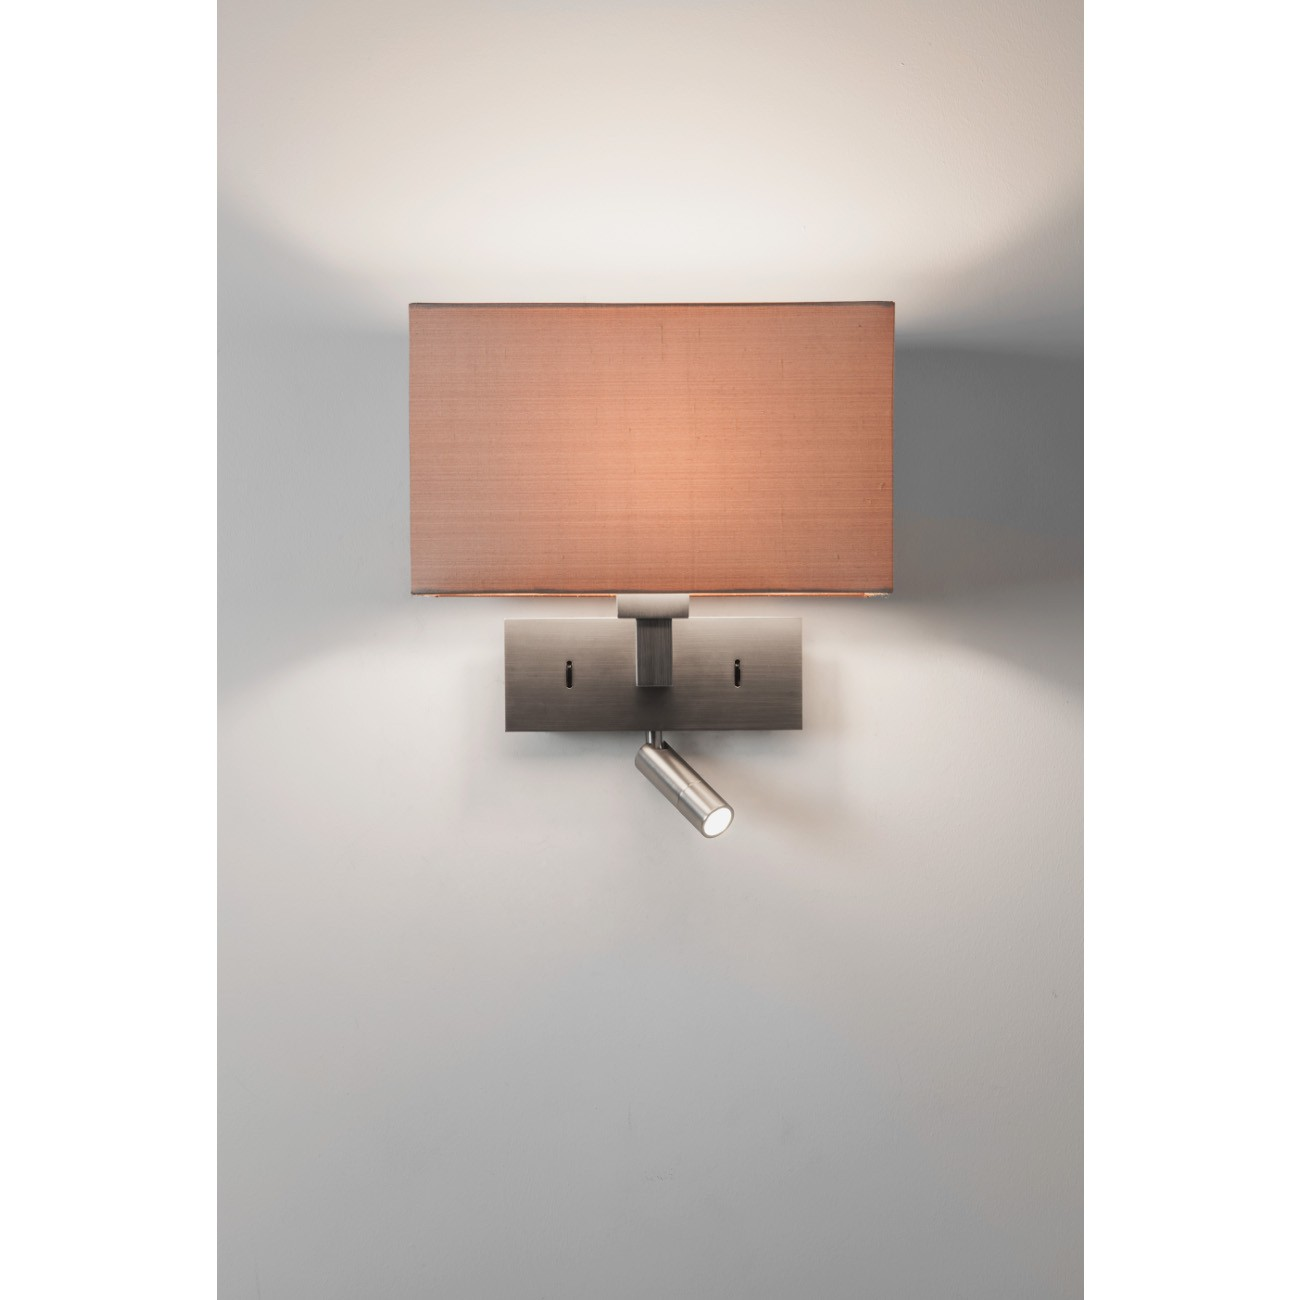 wandlampe mit eckigem schirm und schwenkbarem led licht park lane reader. Black Bedroom Furniture Sets. Home Design Ideas